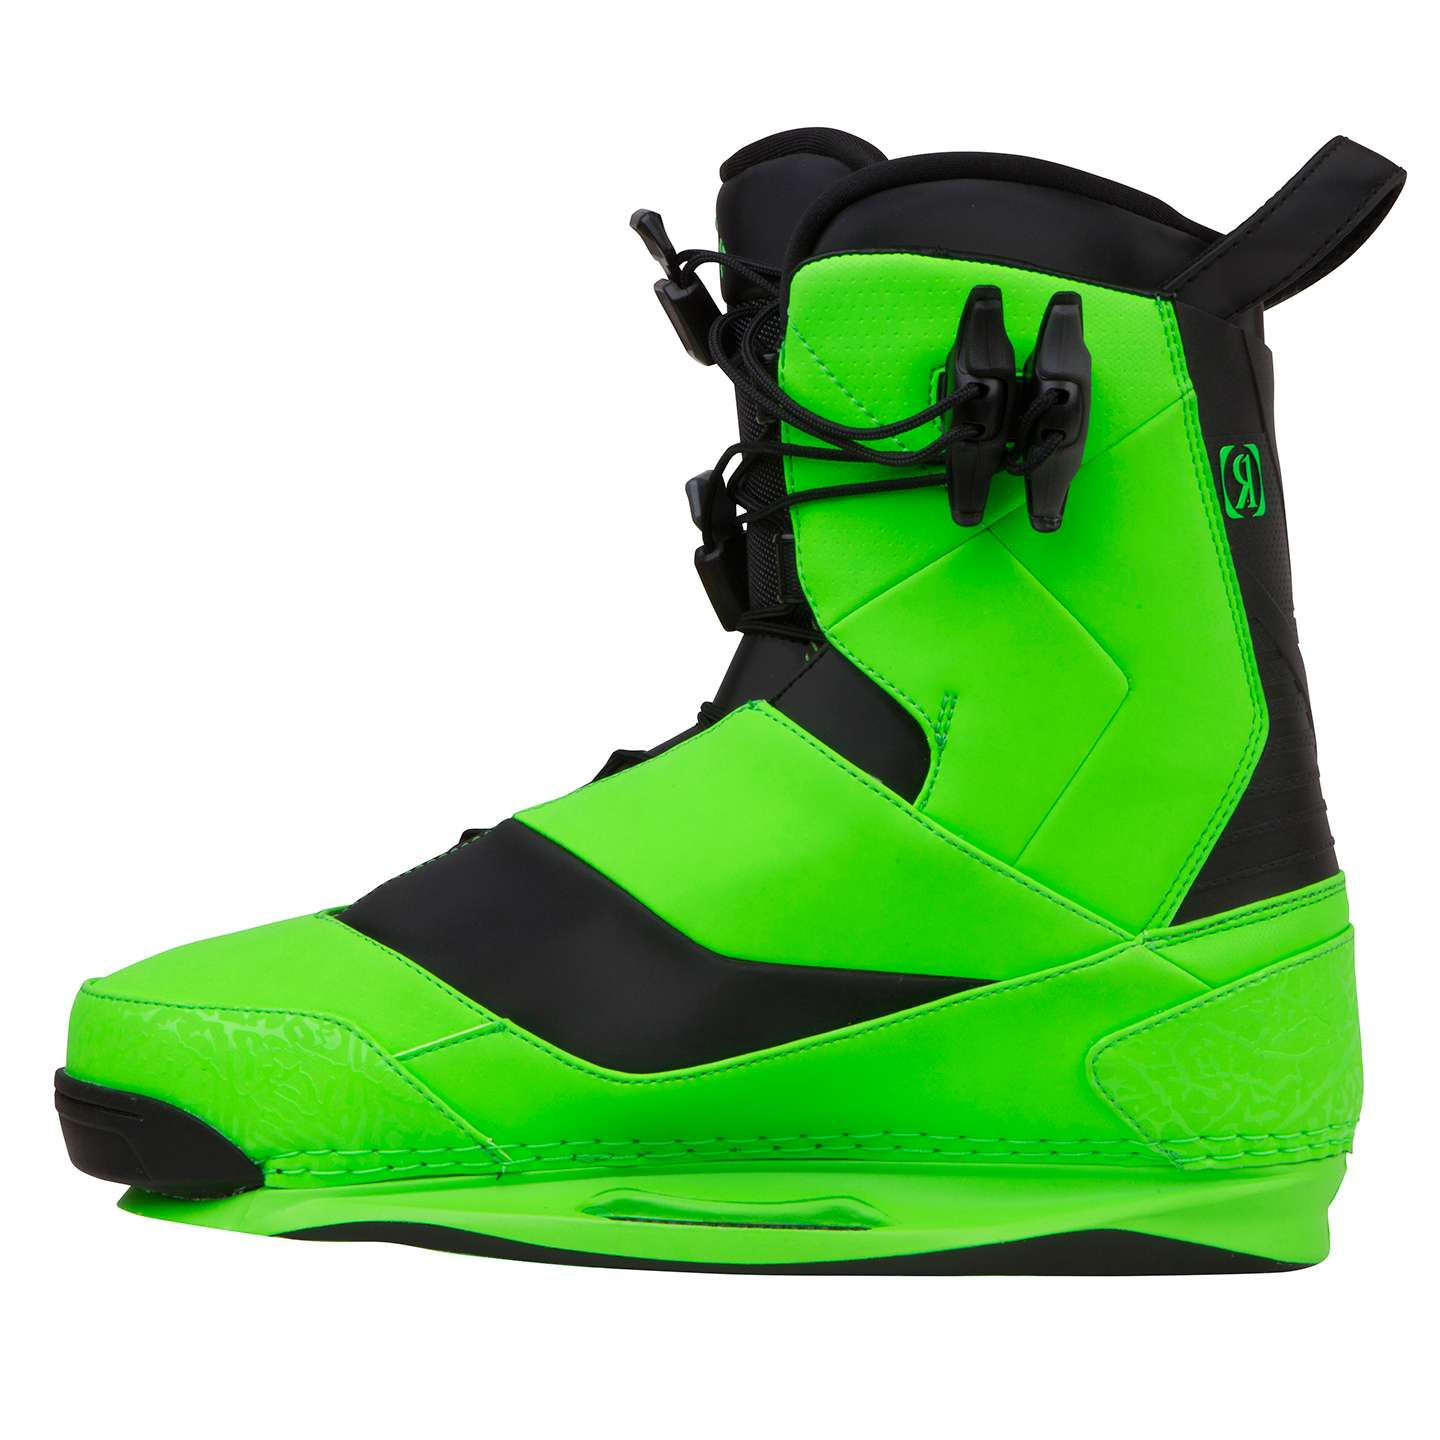 Ronix One LTD Green Wakeboard Boots 2014